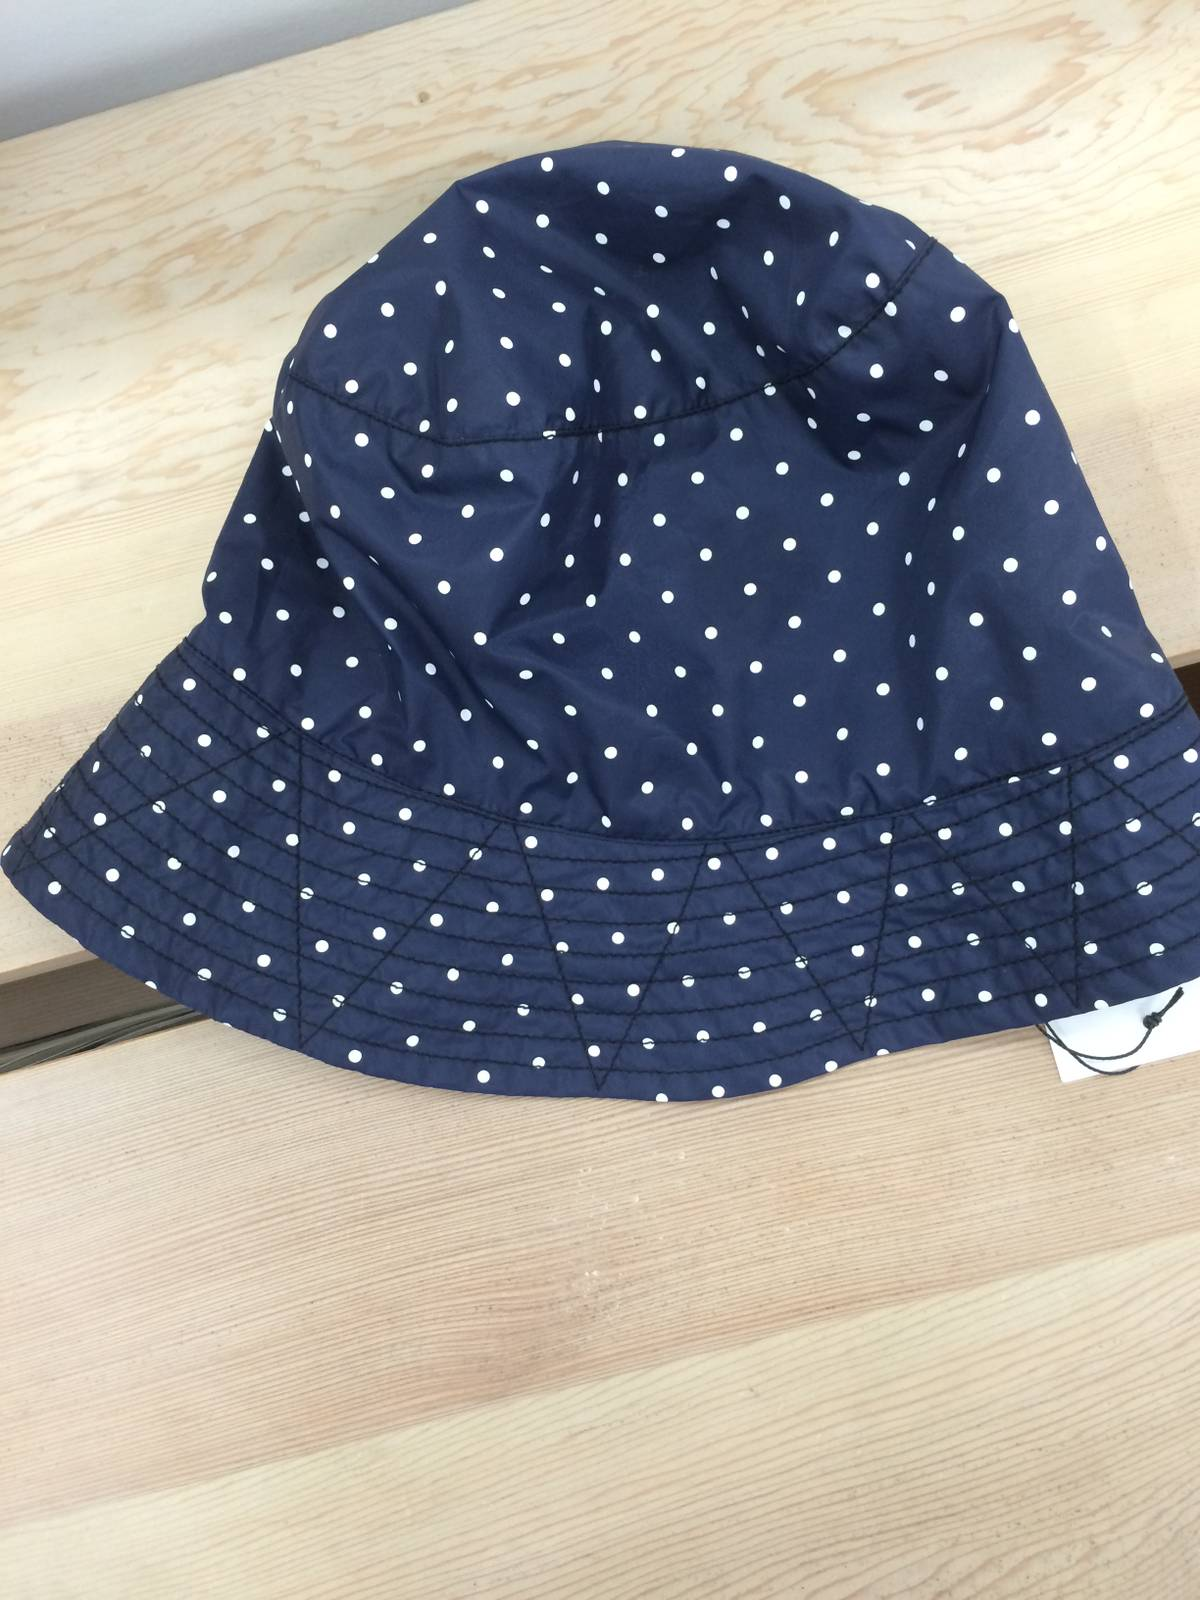 665b8fa5b2c Engineered Garments Reversible Bucket Hat Sz M Size one size - Hats ...